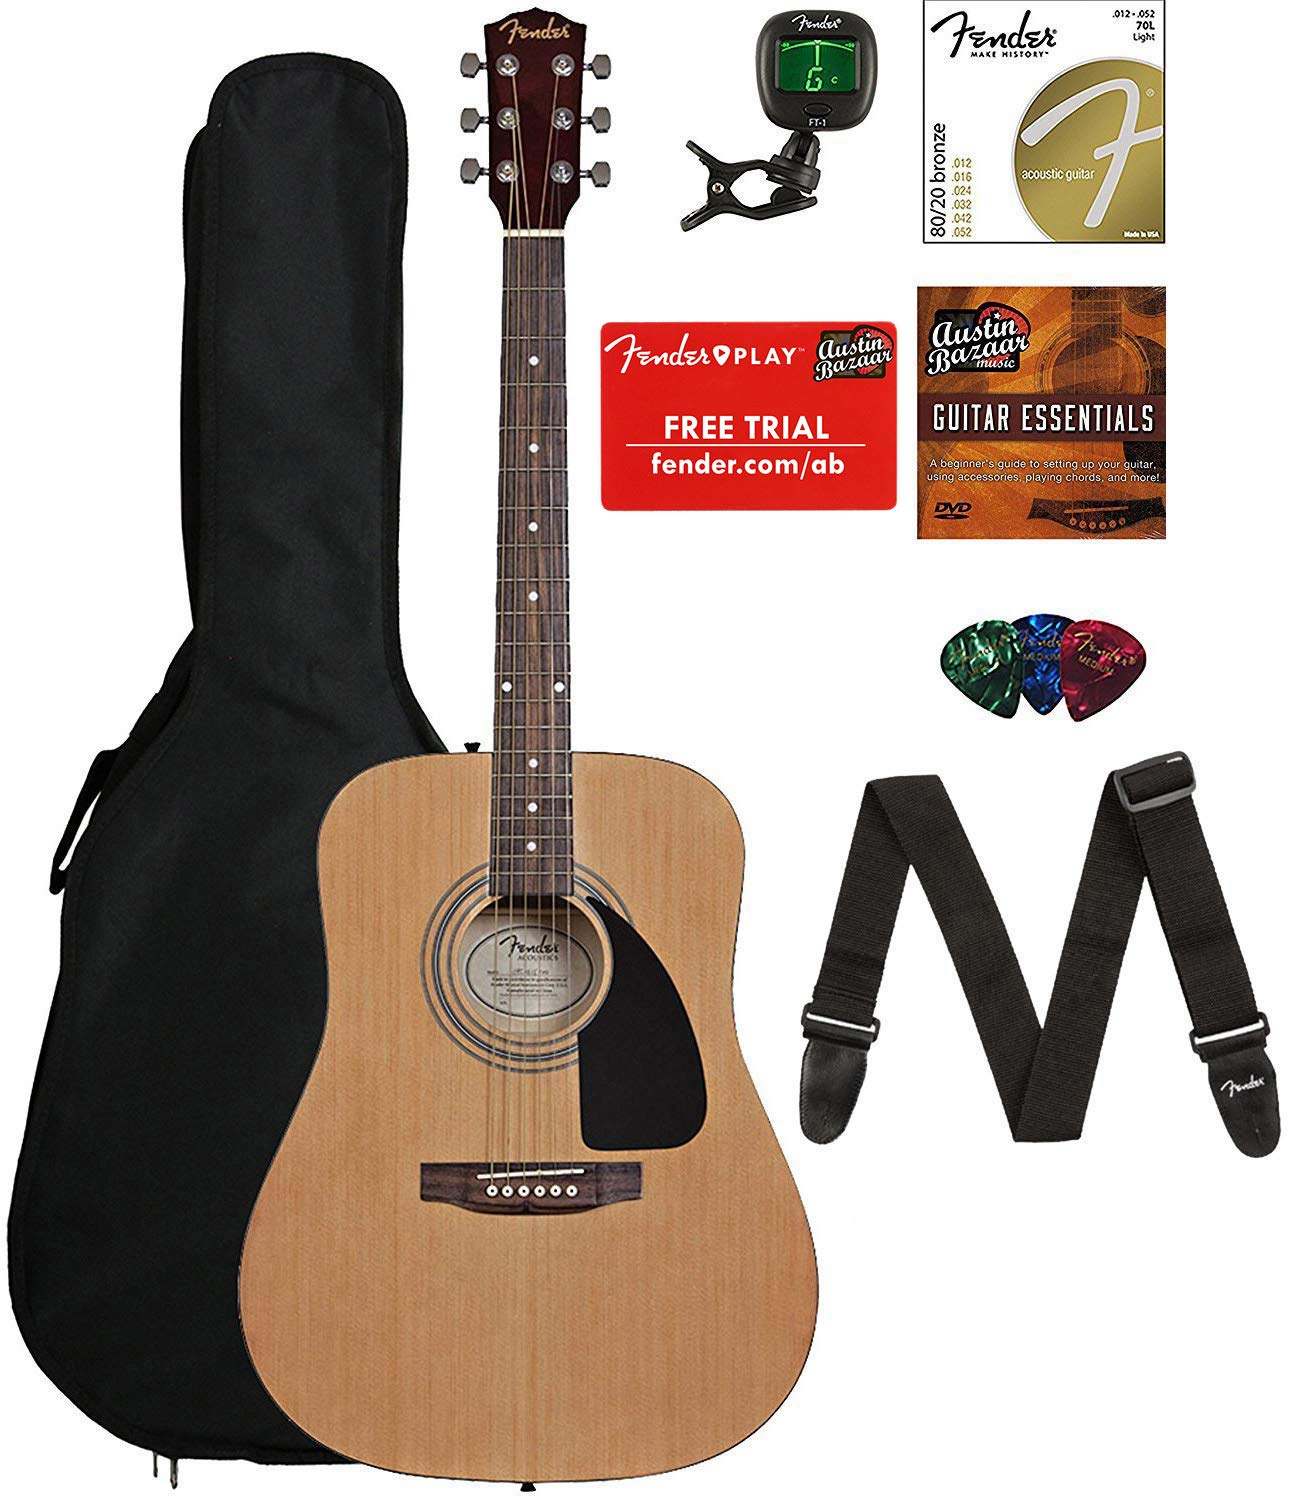 All the conents of the Fender FA-115 Beginner Acoustic Guitar Bundle, including the guitar.